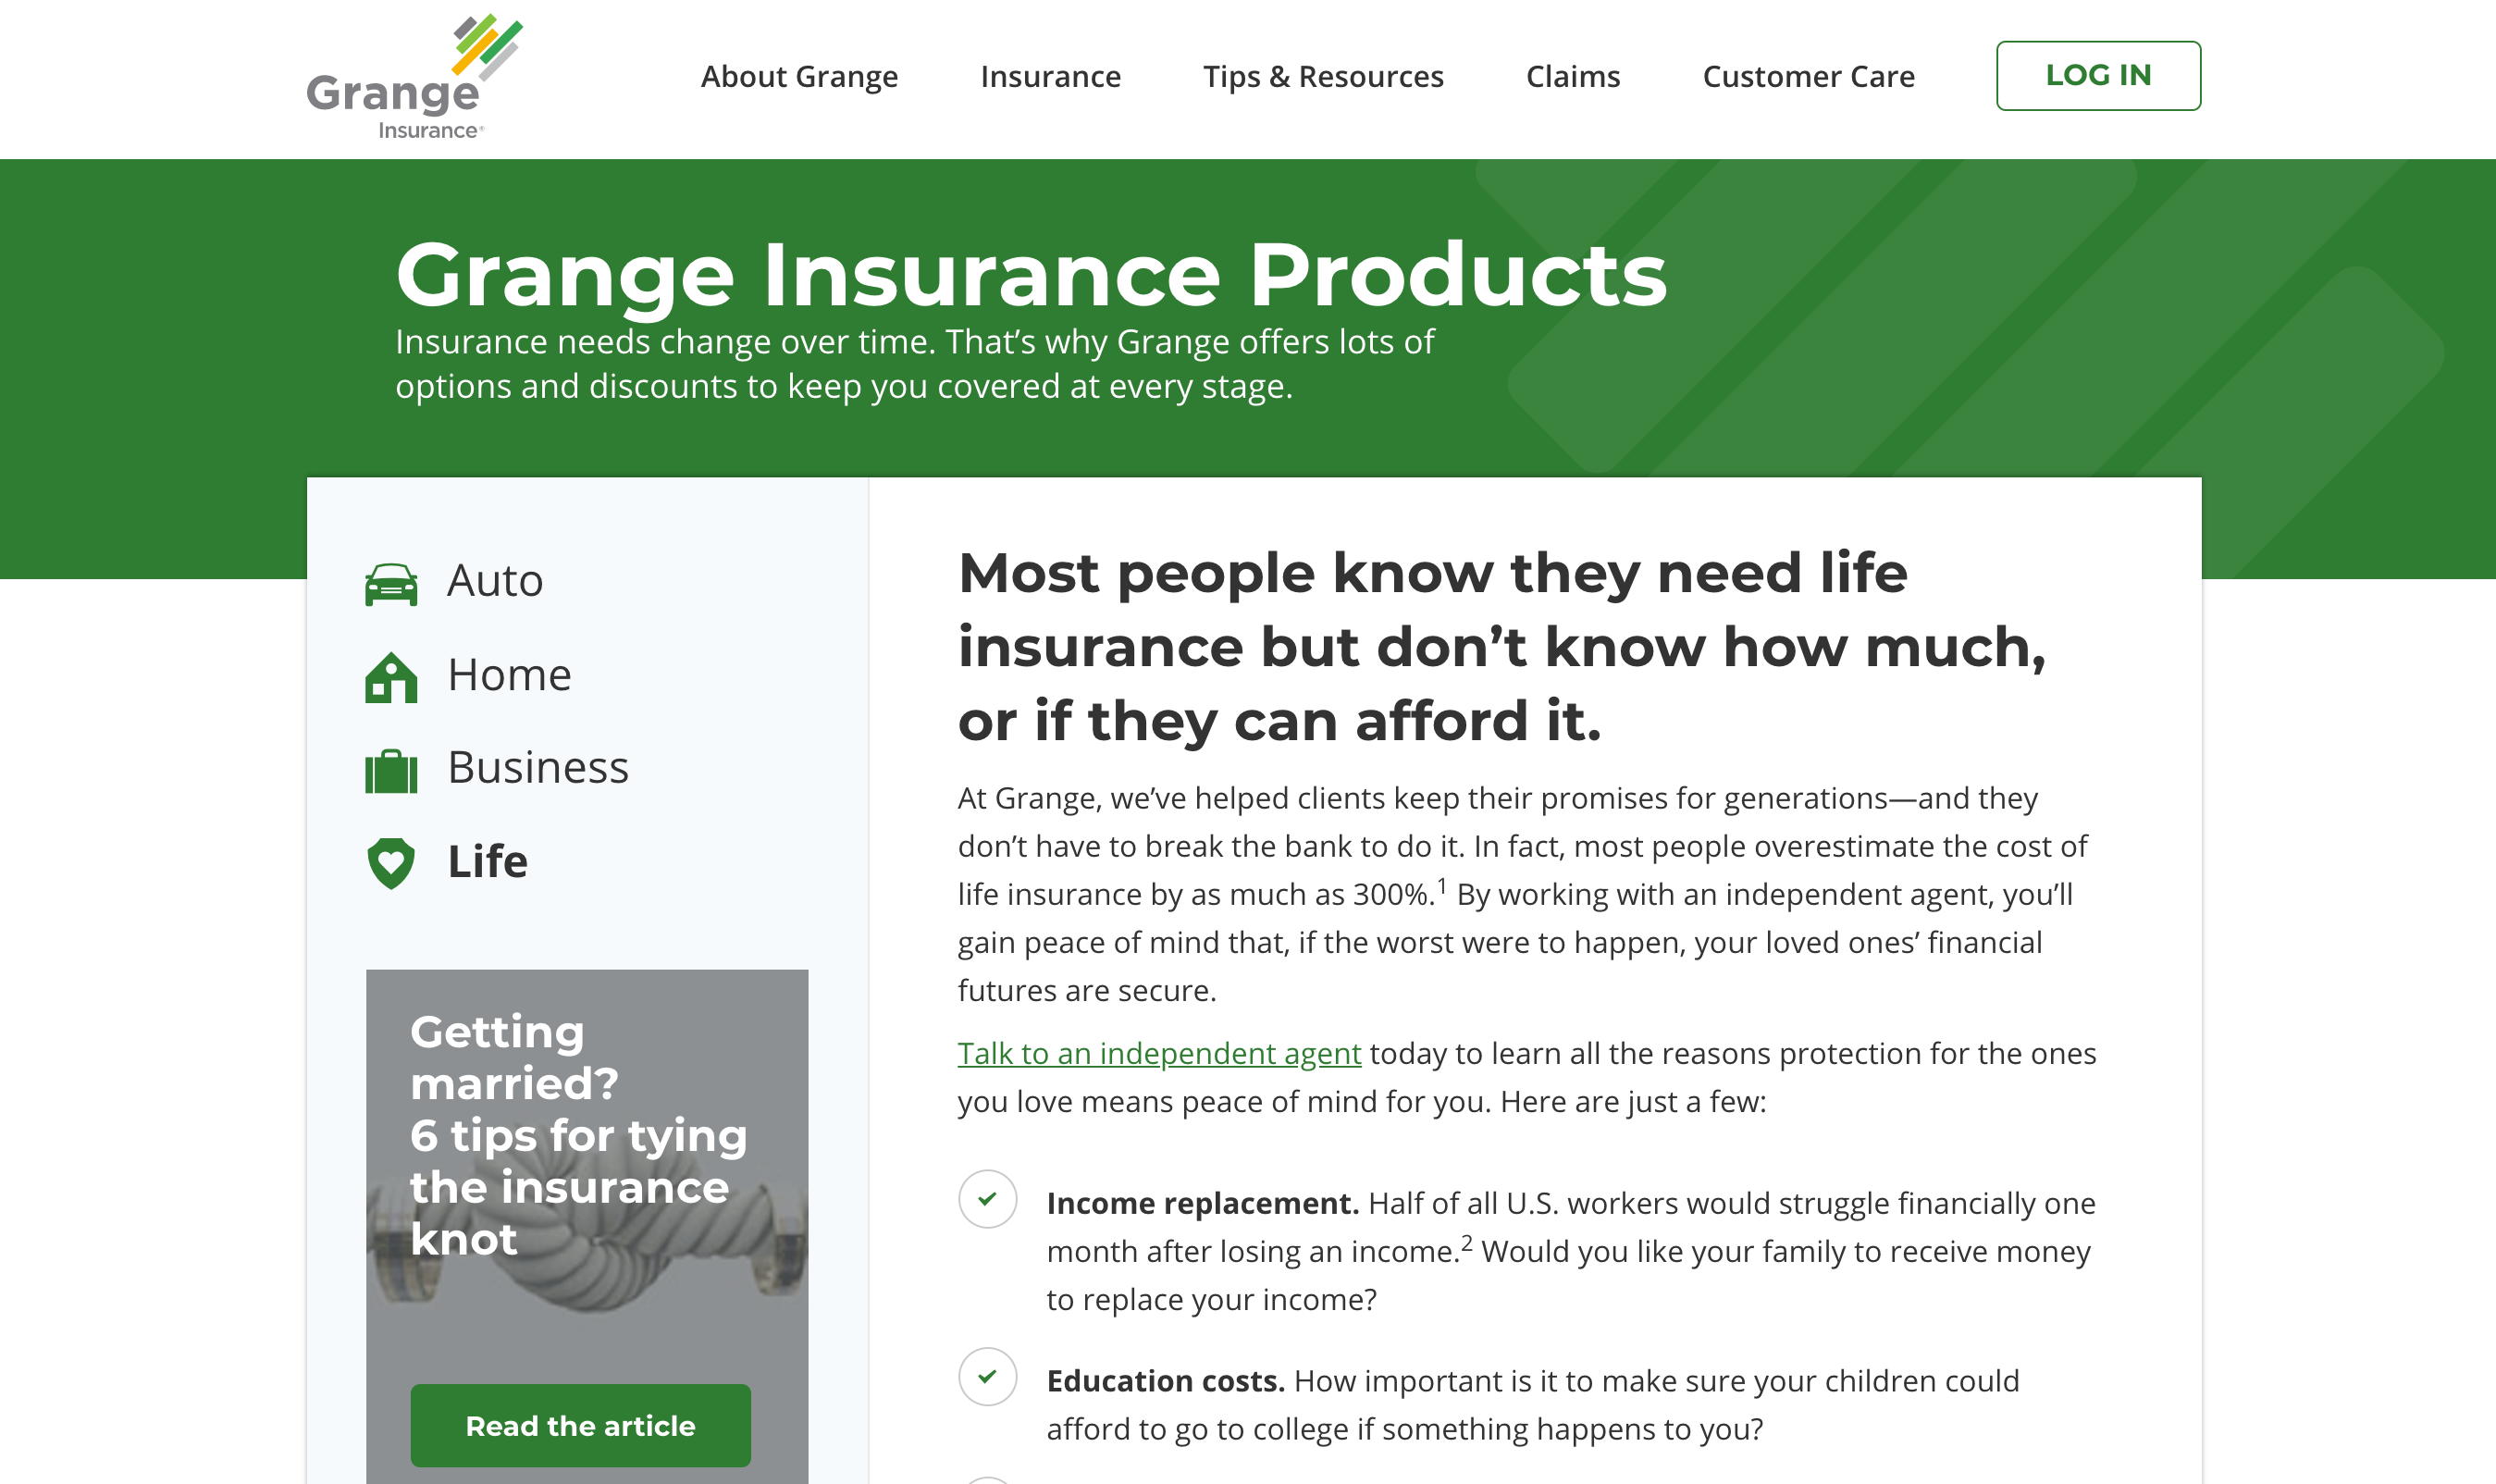 Grange Life Products Page